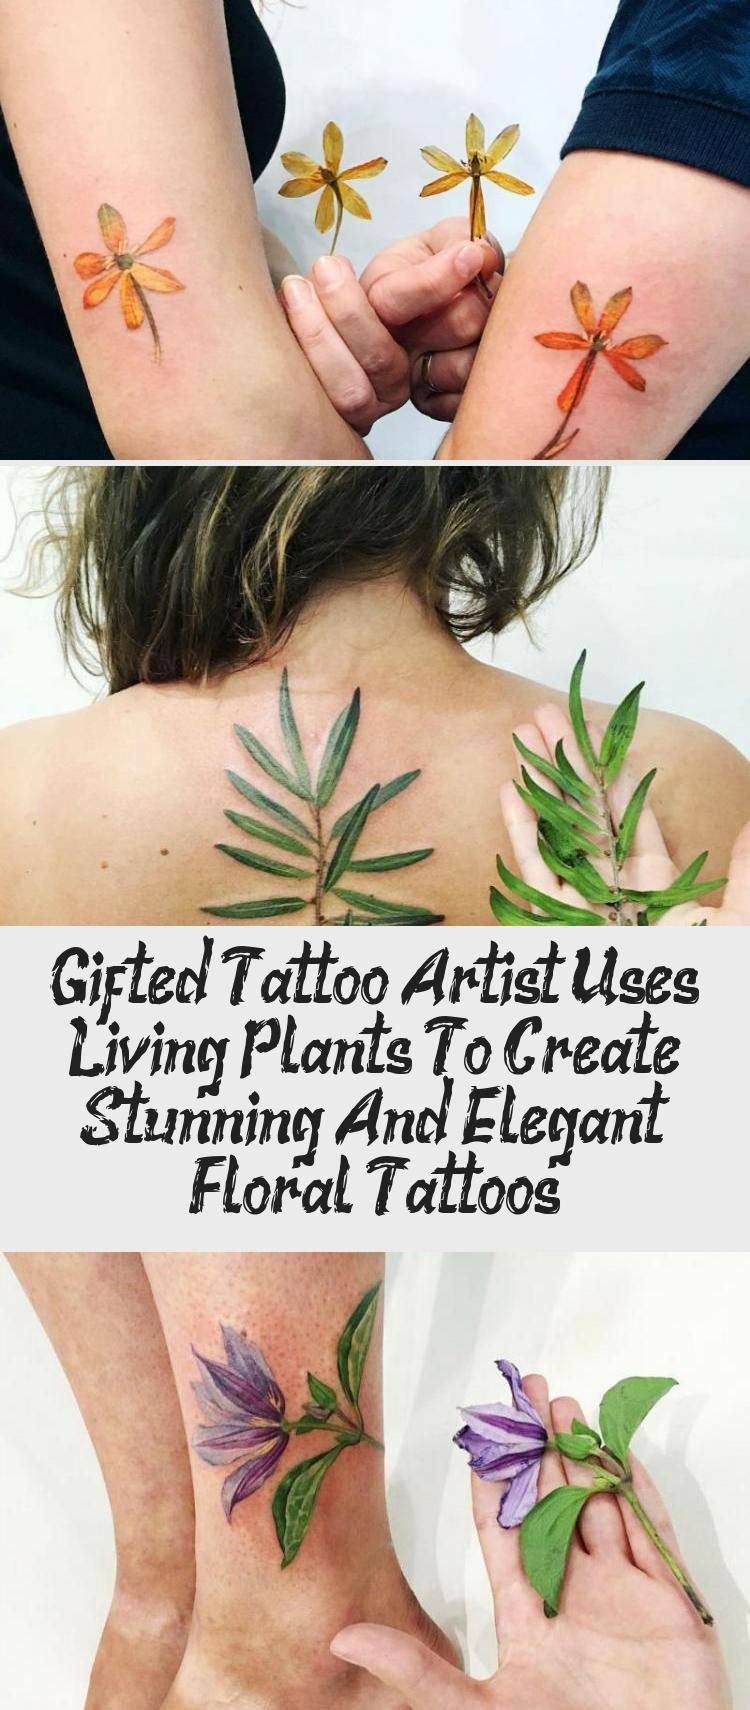 Photo of Gifted Tattoo Artist Uses Living Plants To Create Stunning And Elegant Floral Tattoos – Best Tattoos